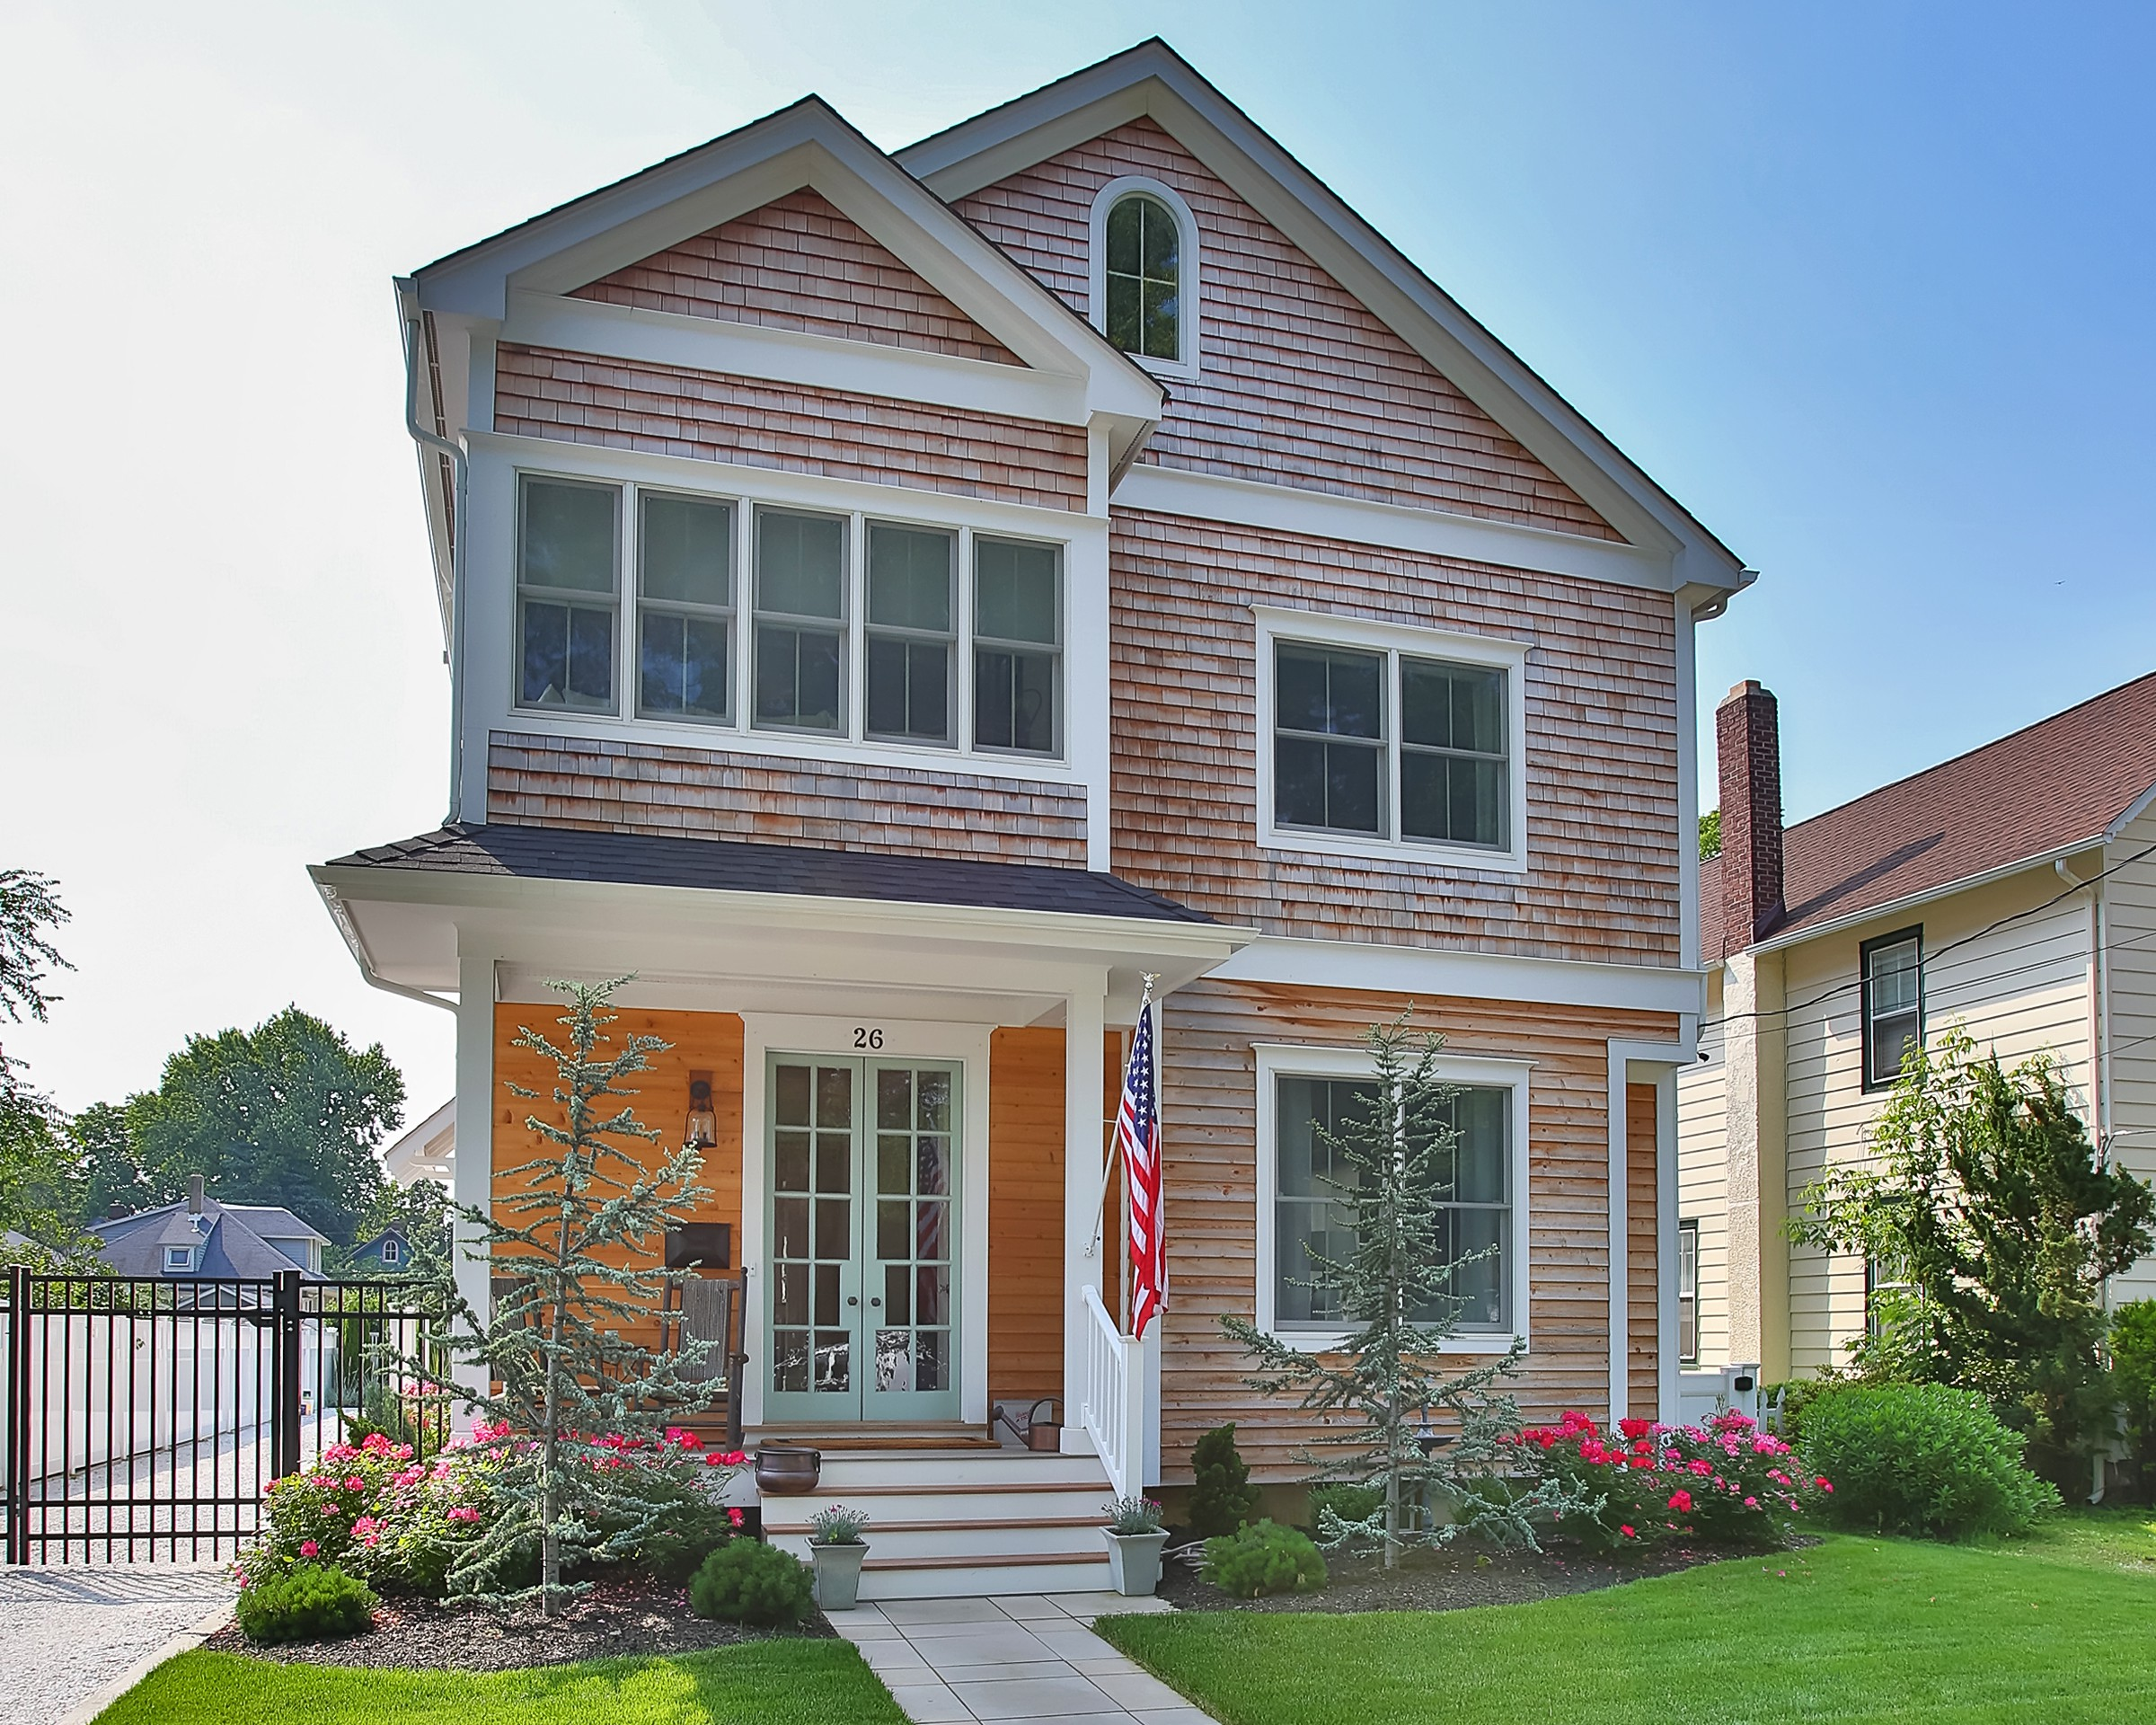 Single Family Home for Sale at Office Exclusive 26 Pearce Ave Manasquan, New Jersey 08736 United States